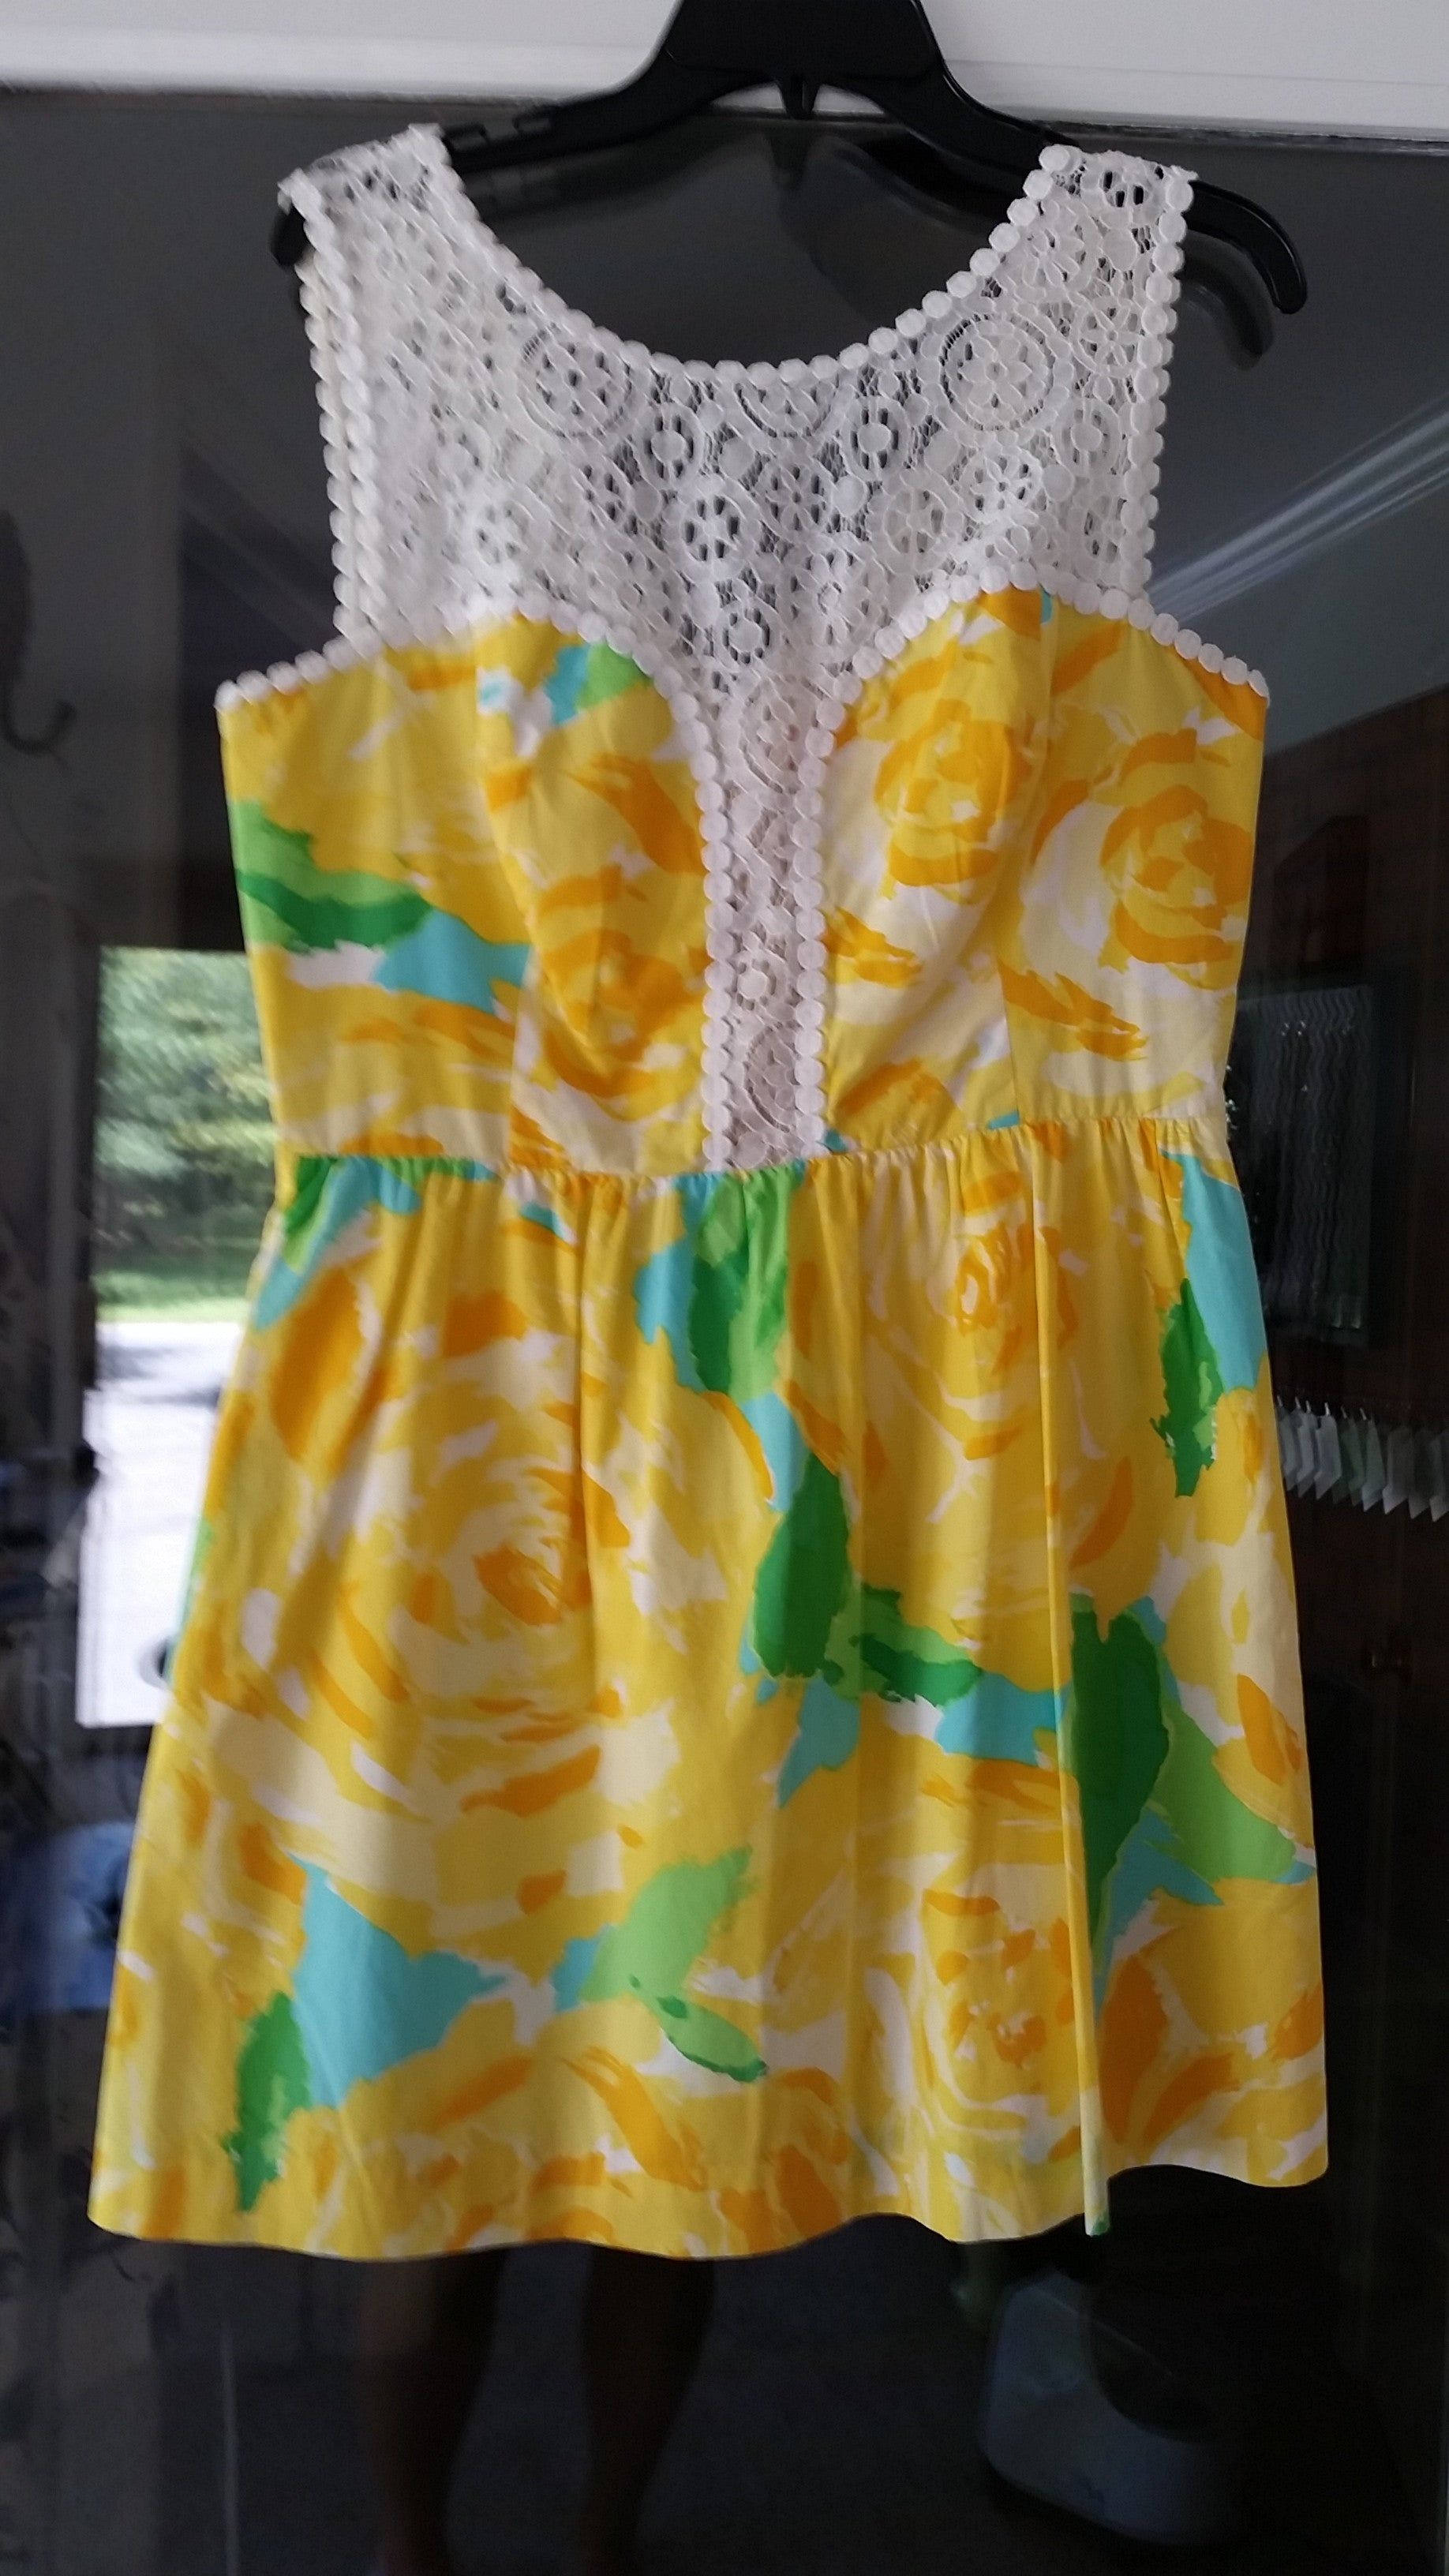 RETURNED TO LENDER ON 7/18/18. Yellow Mini Sleeveless Jewel Dress by Lilly Pulitzer, Size 12